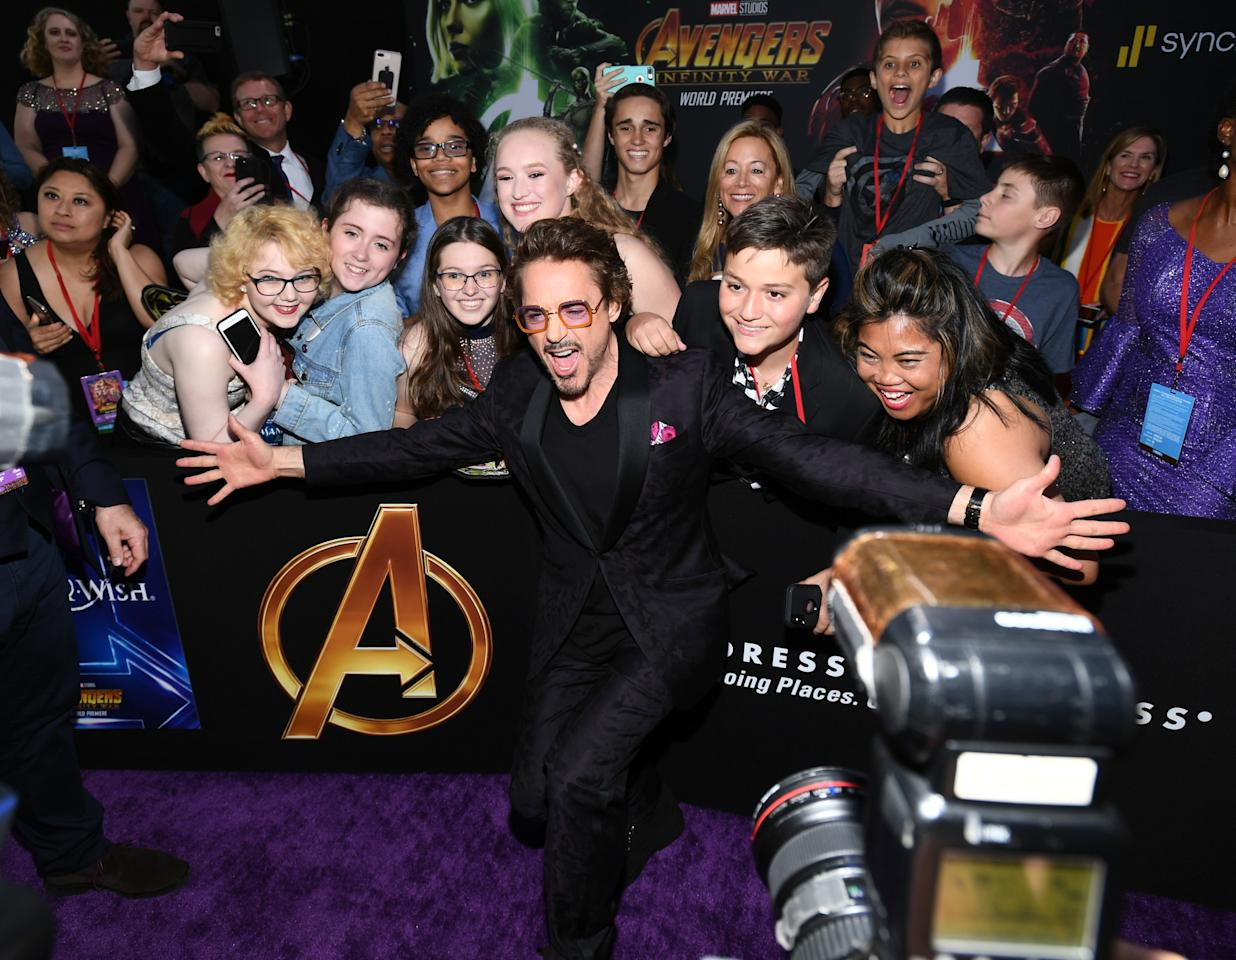 <p>The actor who plays Tony Stark — and Iron Man — always knows how to steal the show. (Photo: Getty Images) </p>